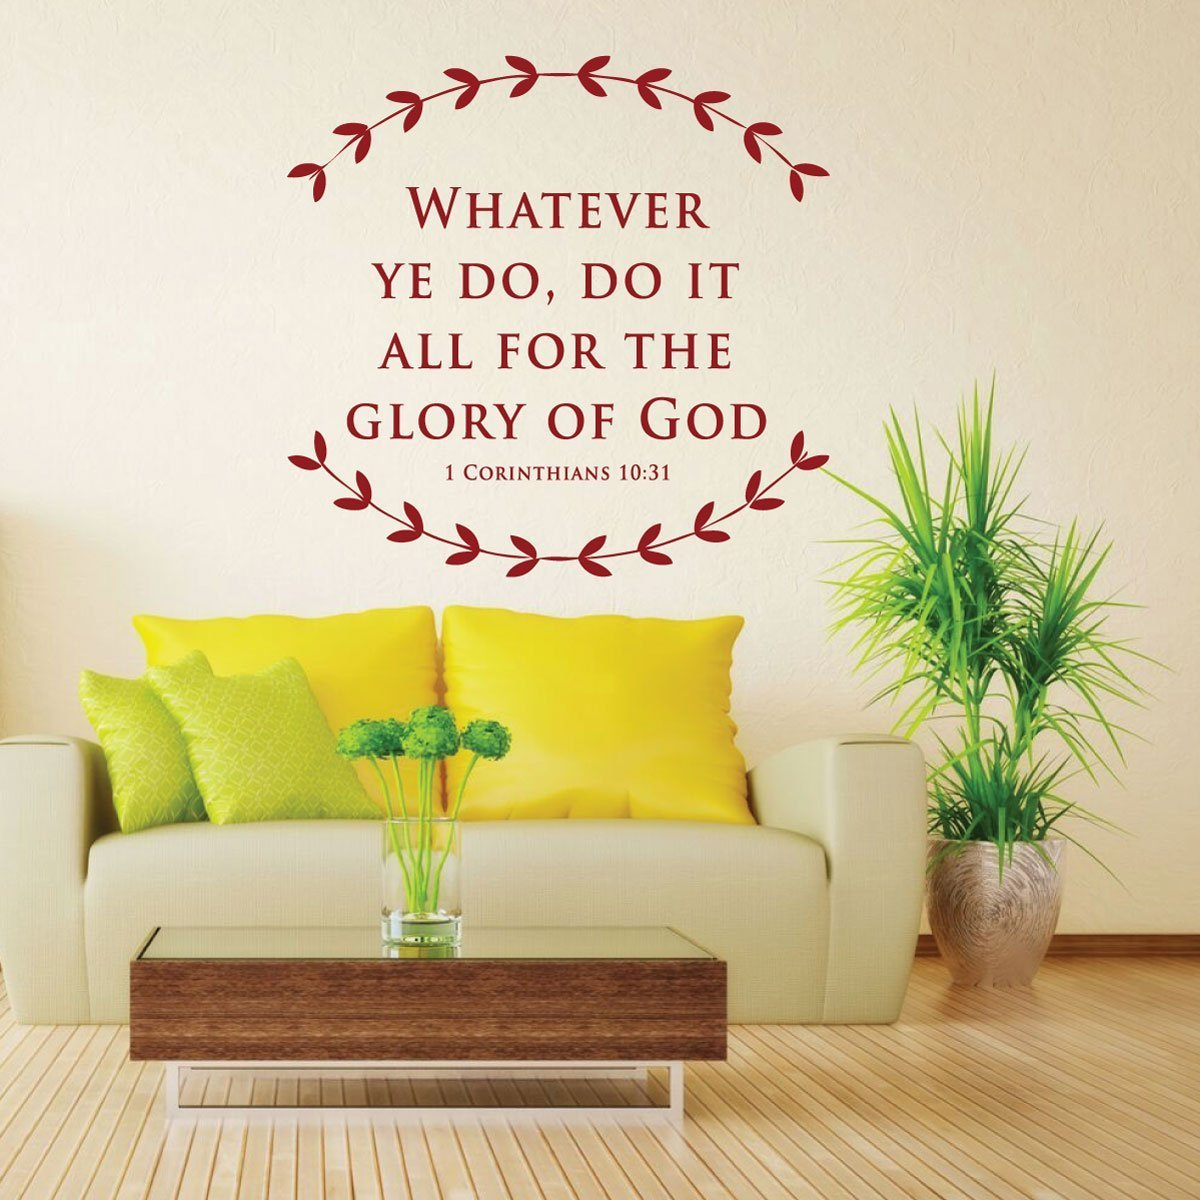 Amazing Vinyl Scripture Wall Art Pictures Inspiration - The Wall ...